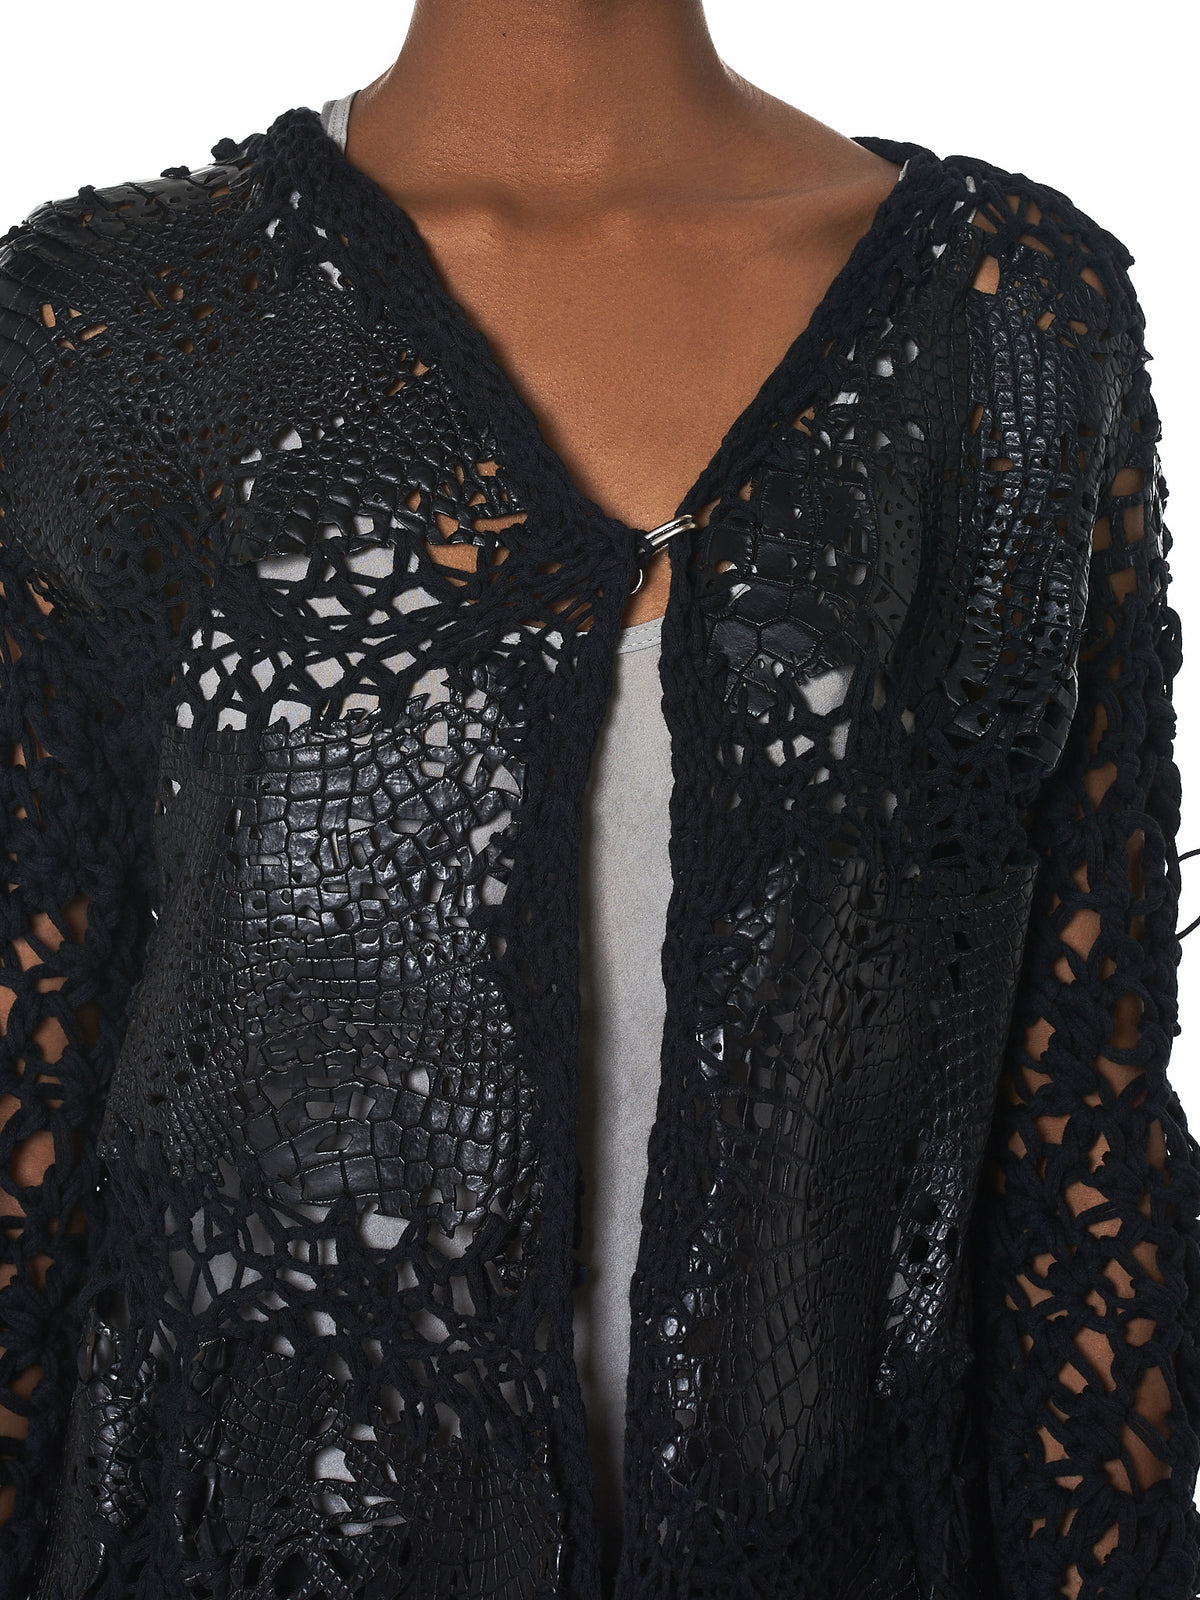 Alessandra Marchi Alligator Leather Cardigan - Hlorenzo Detail 2